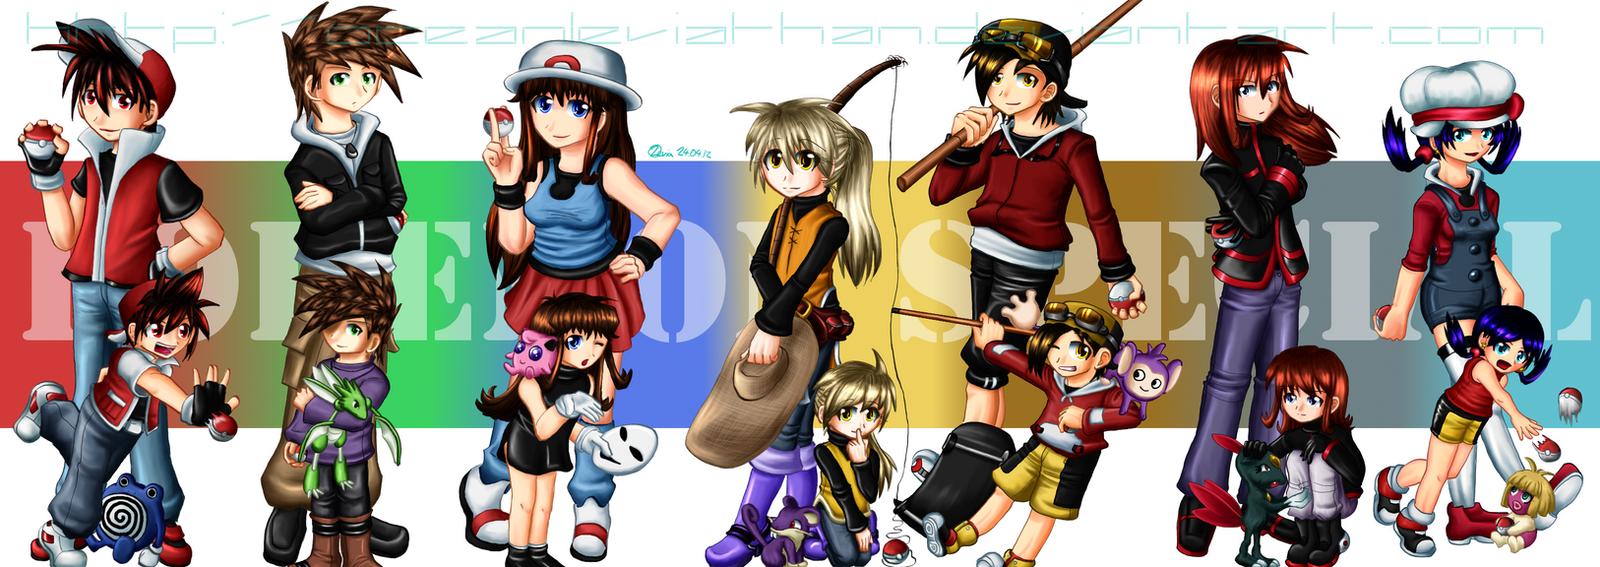 Anime Characters Grown Up : Pokespe all grown up by oceanleviathan on deviantart